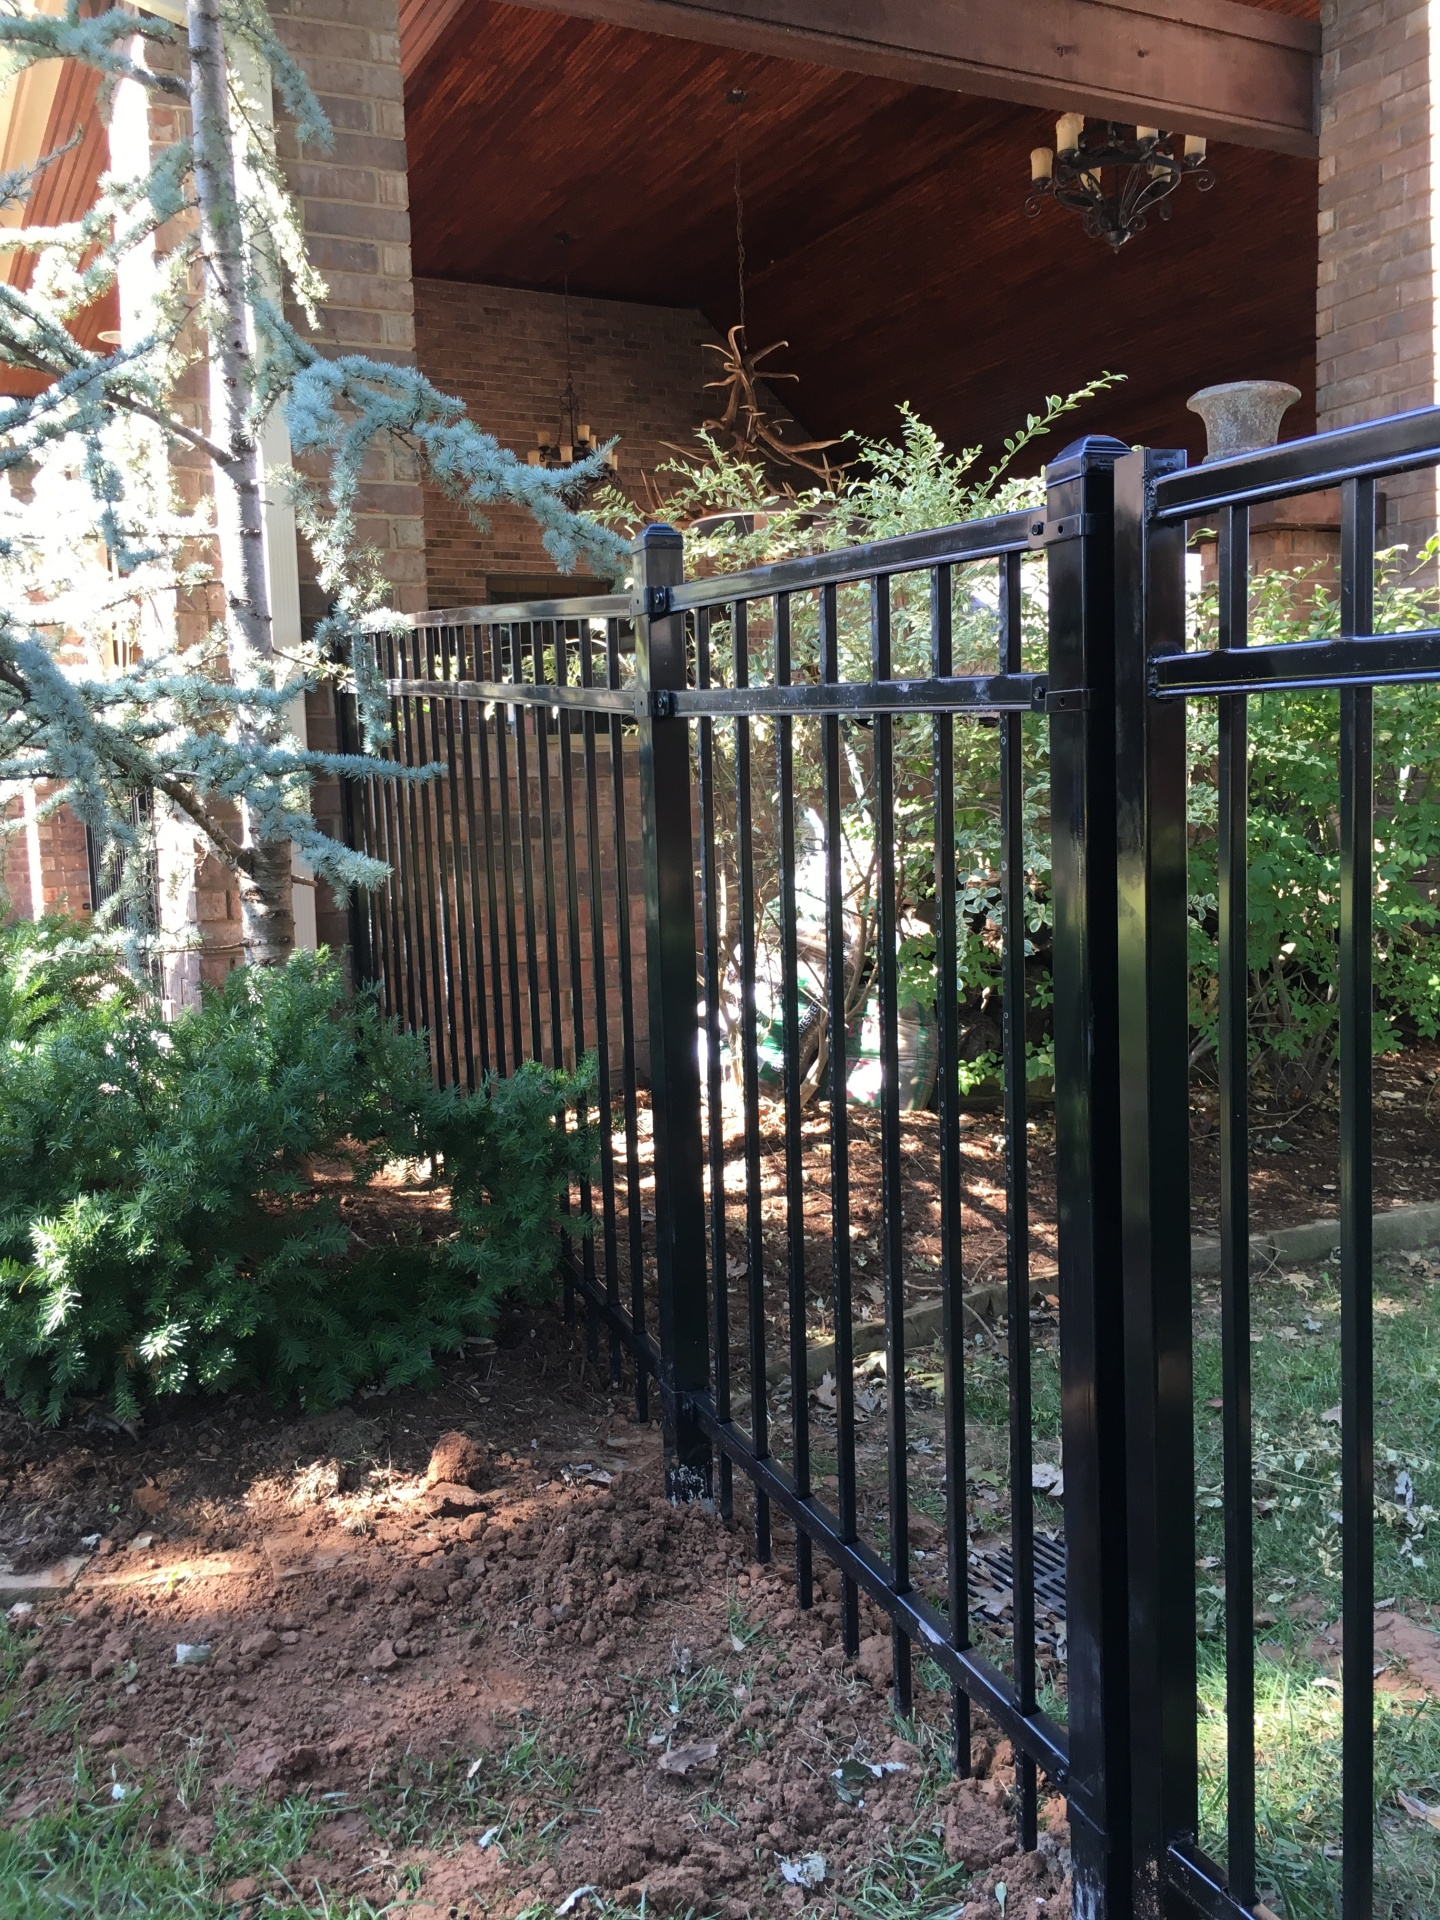 Black Iron Fence, Ameristar Fence, Edmond Oklahoma Fence Company, Secure Fence, Security